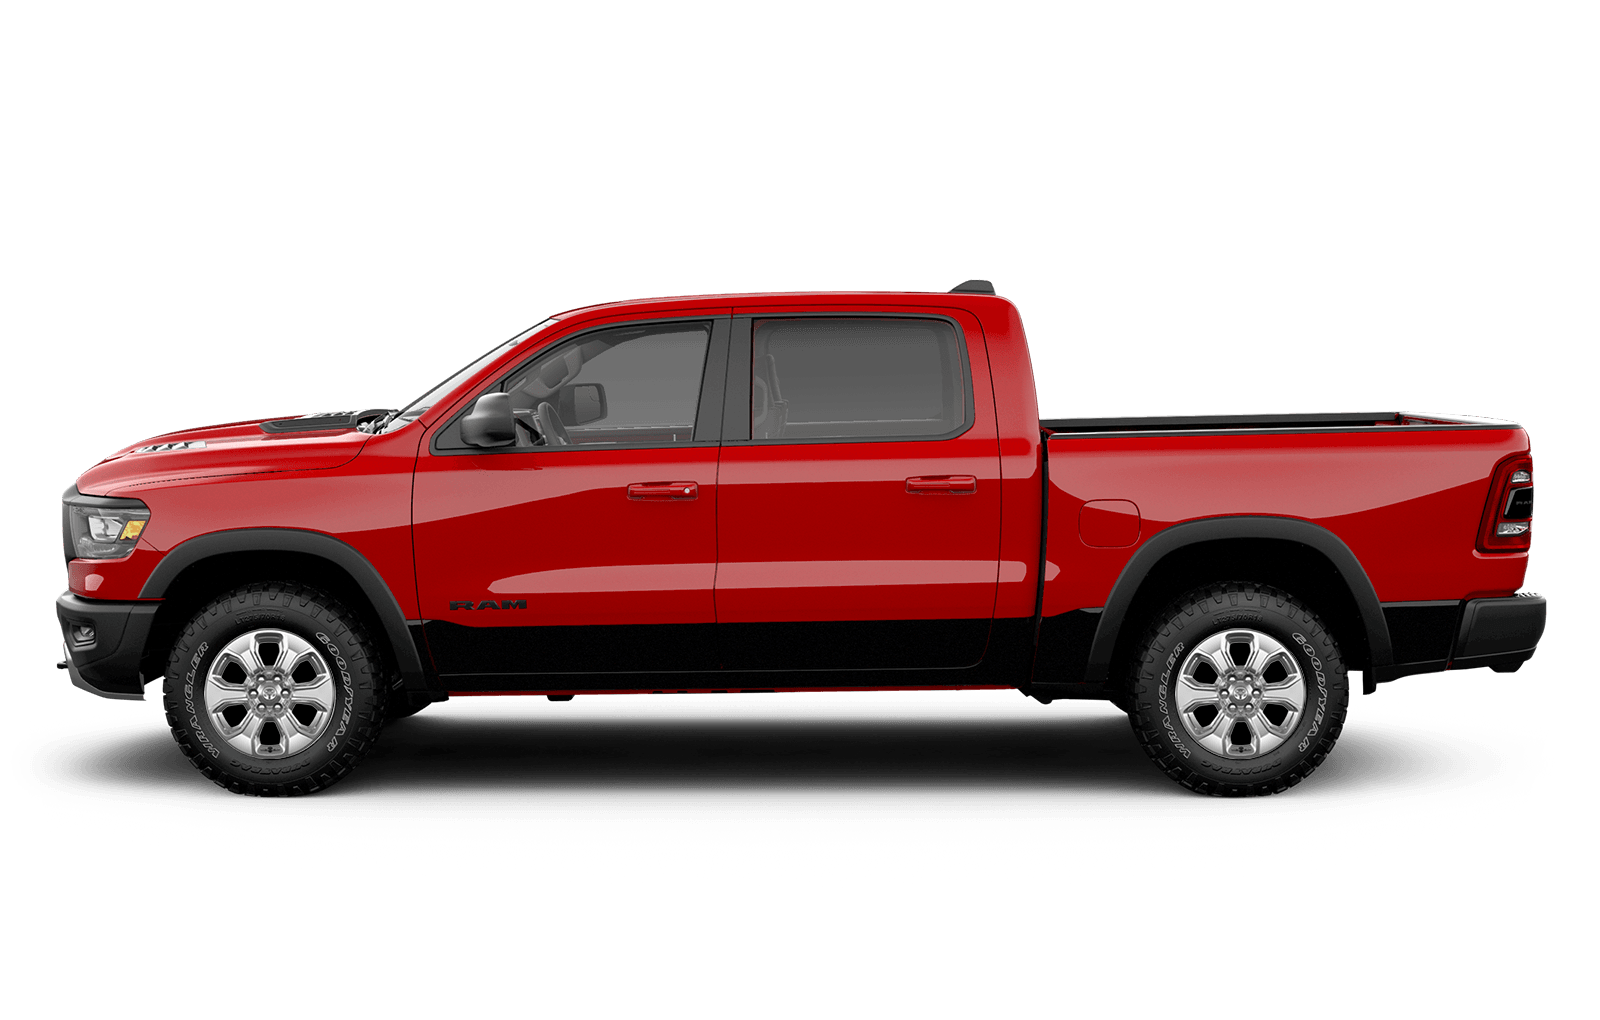 2019 Ram 1500 20inch chrome clad aluminum wheels on red truck